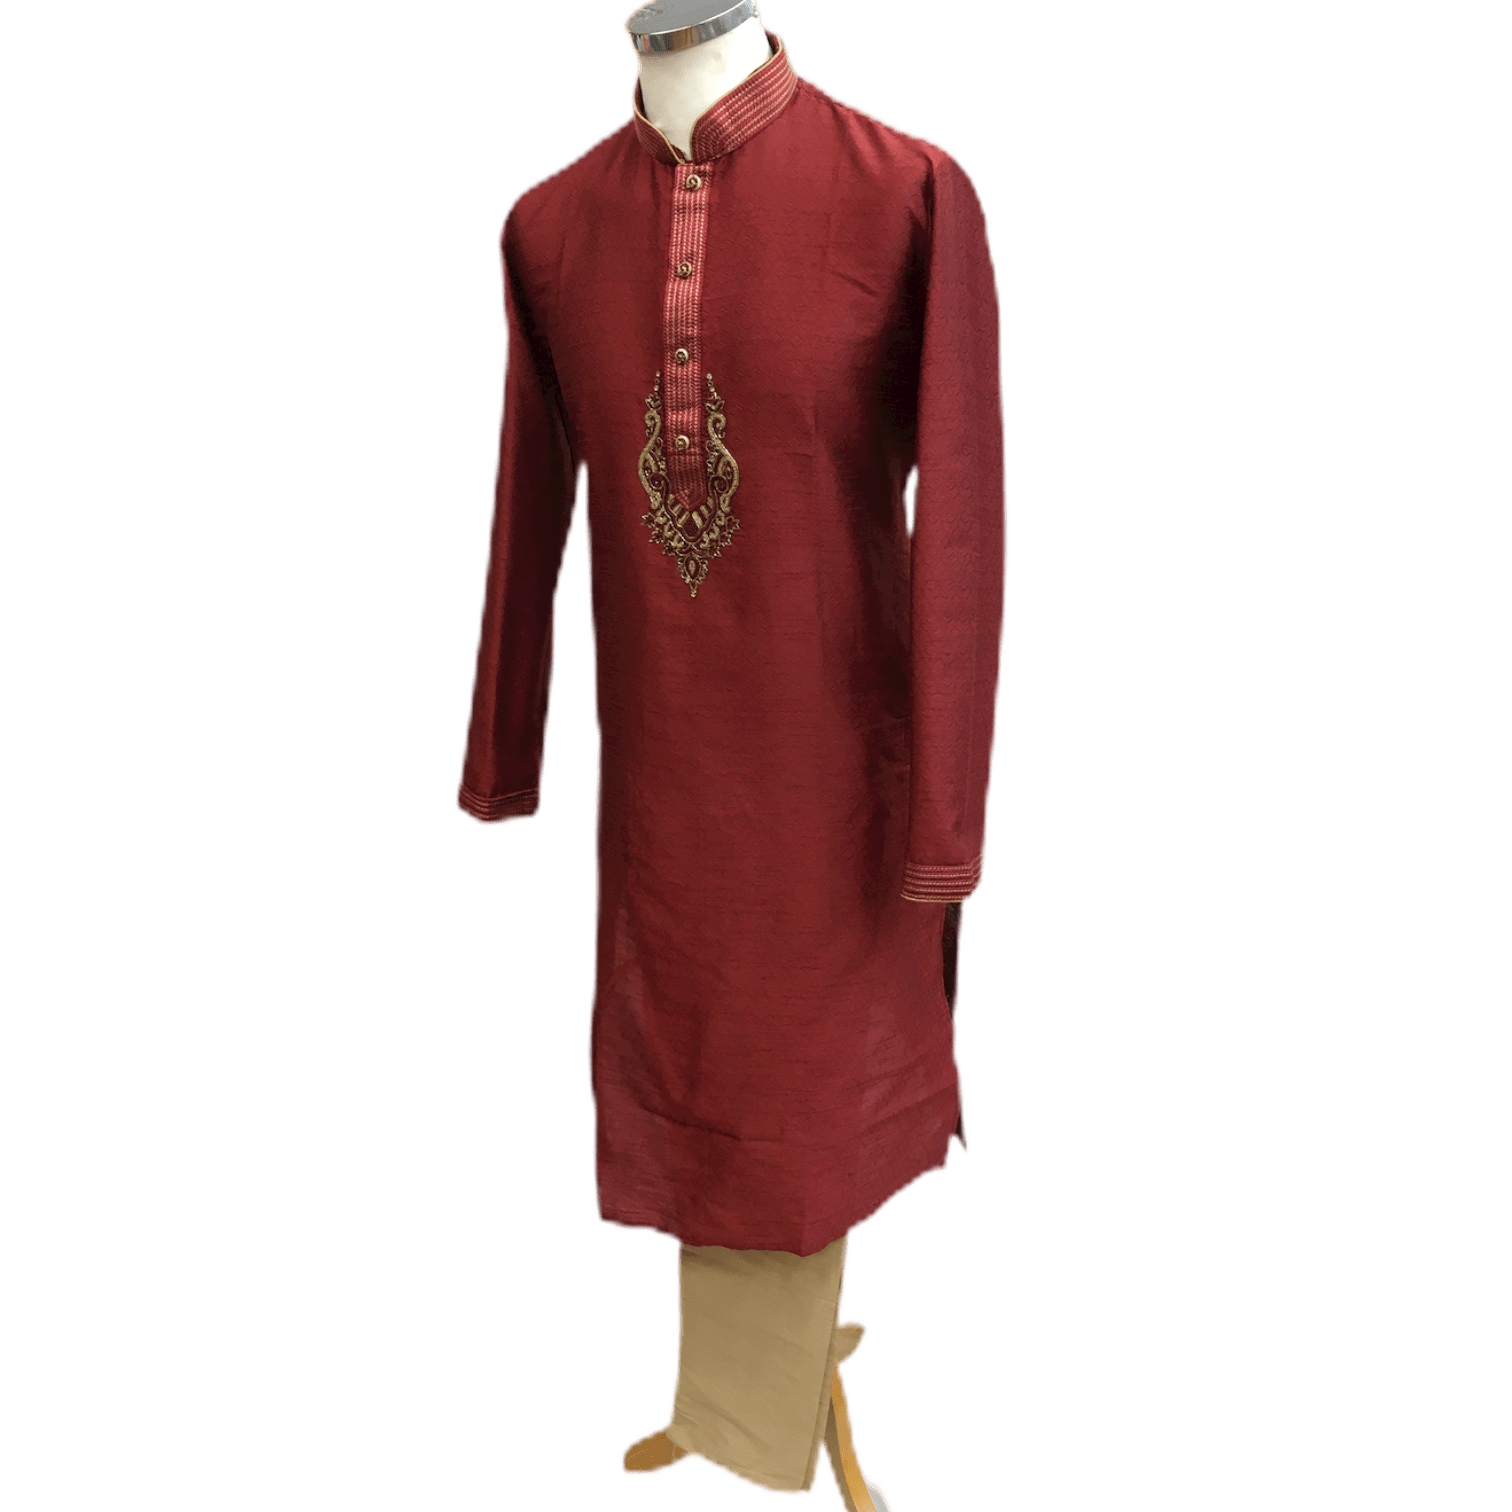 Mens Indian Kurta set in Maroon Burgundy, for weddings, Bollywood Party ( with Draw stringed trousers) - Innova VV0818 - Prachy Creations